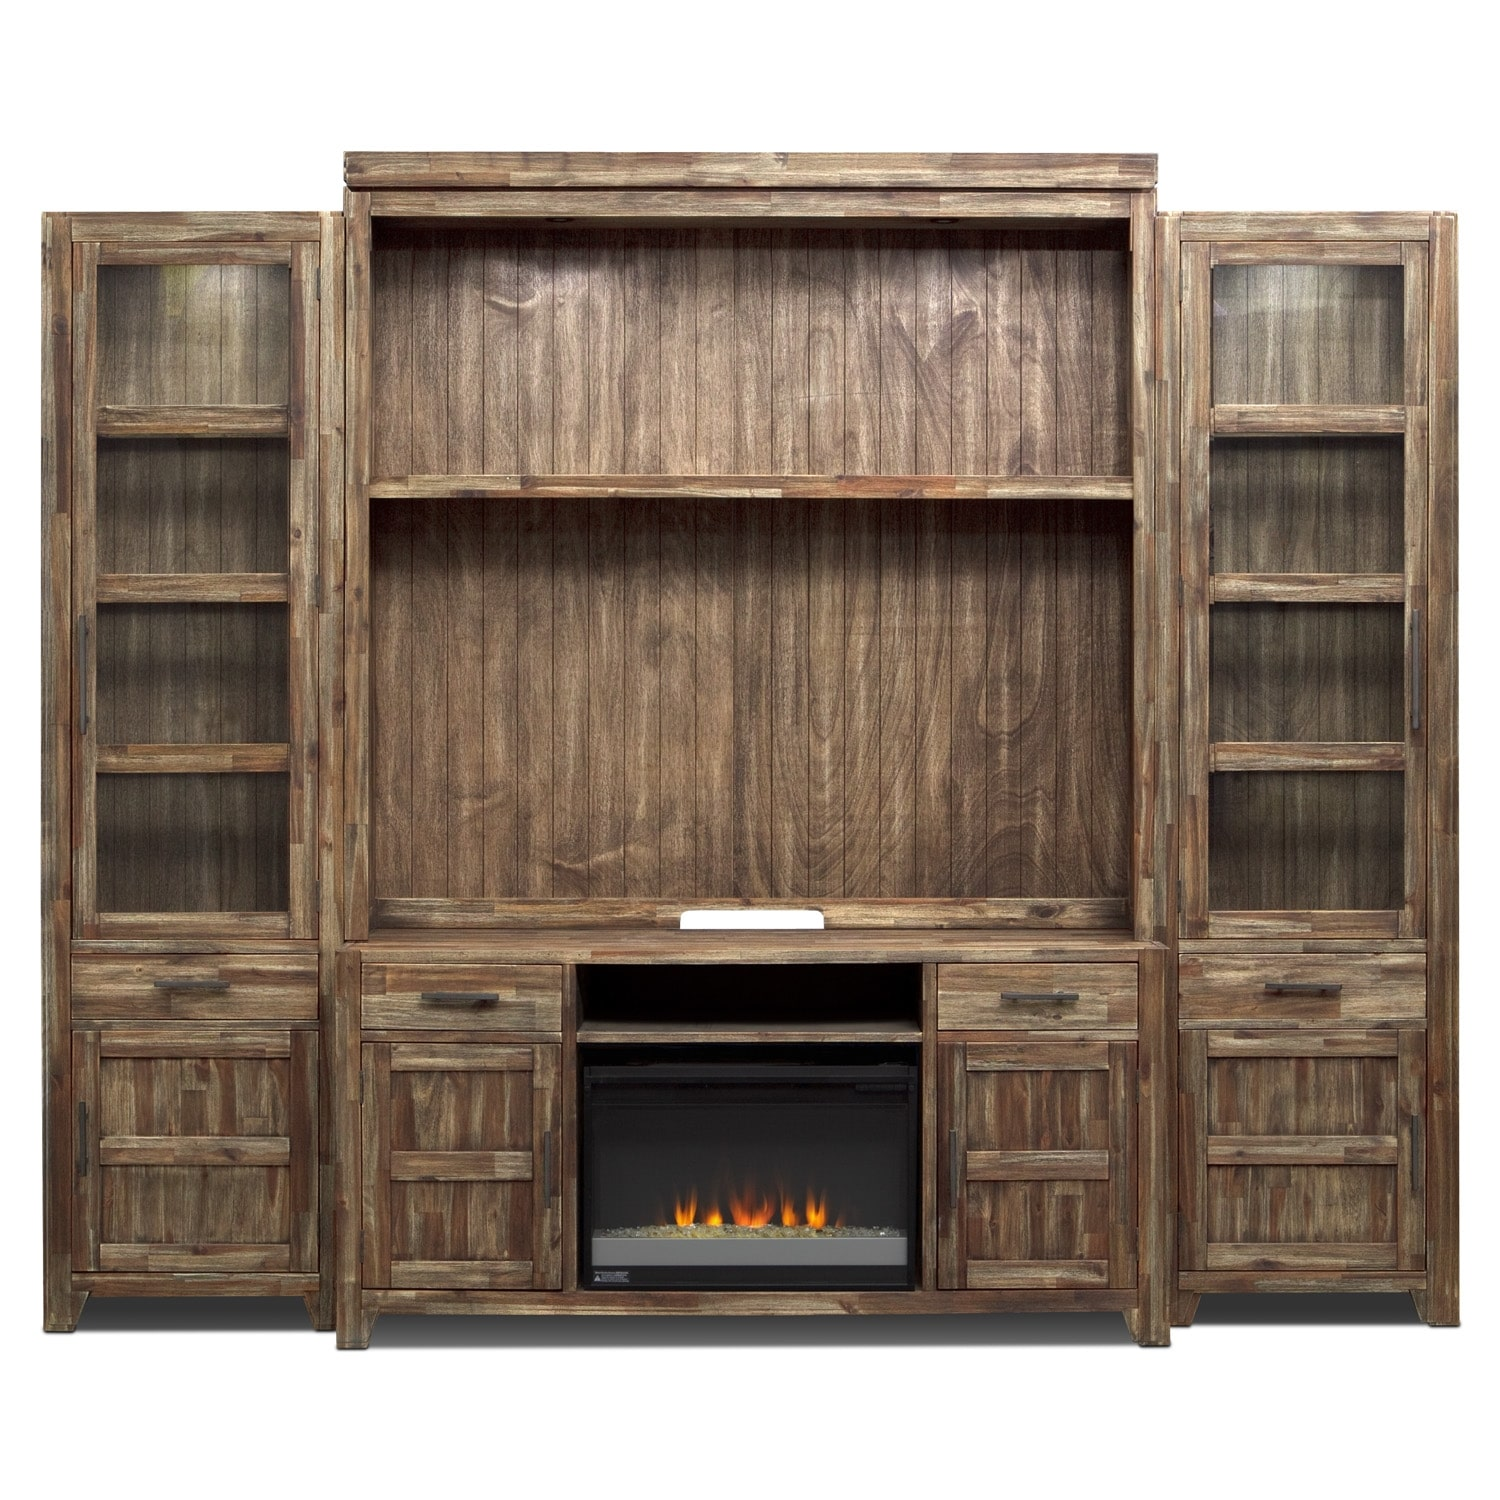 Brentwood Entertainment Wall Units 5 Pc Entertainment Wall Unit W Fireplace